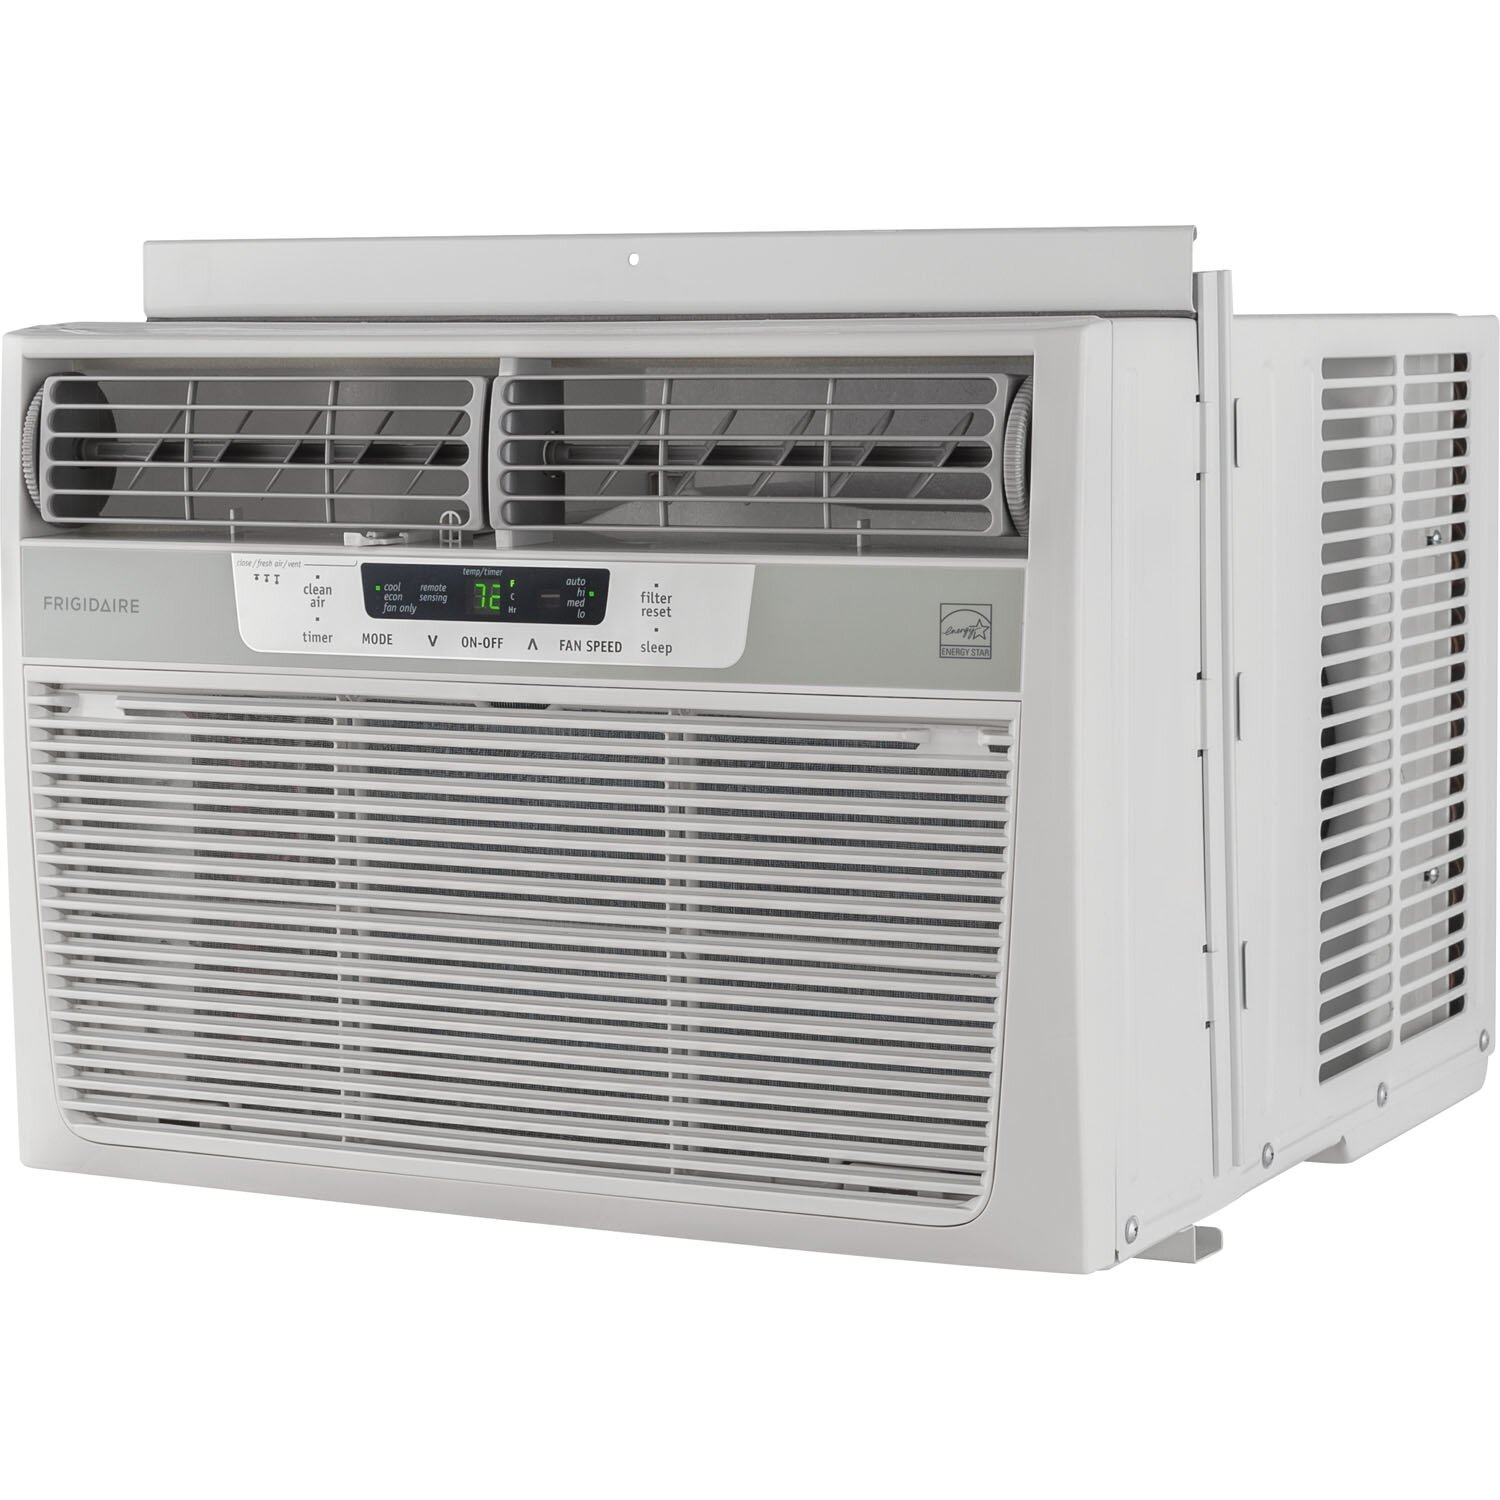 #446E35 Frigidaire 10 000 BTU Energy Star Window Compact Air  Most Recent 14130 Small Window Air Conditioners image with 1500x1500 px on helpvideos.info - Air Conditioners, Air Coolers and more